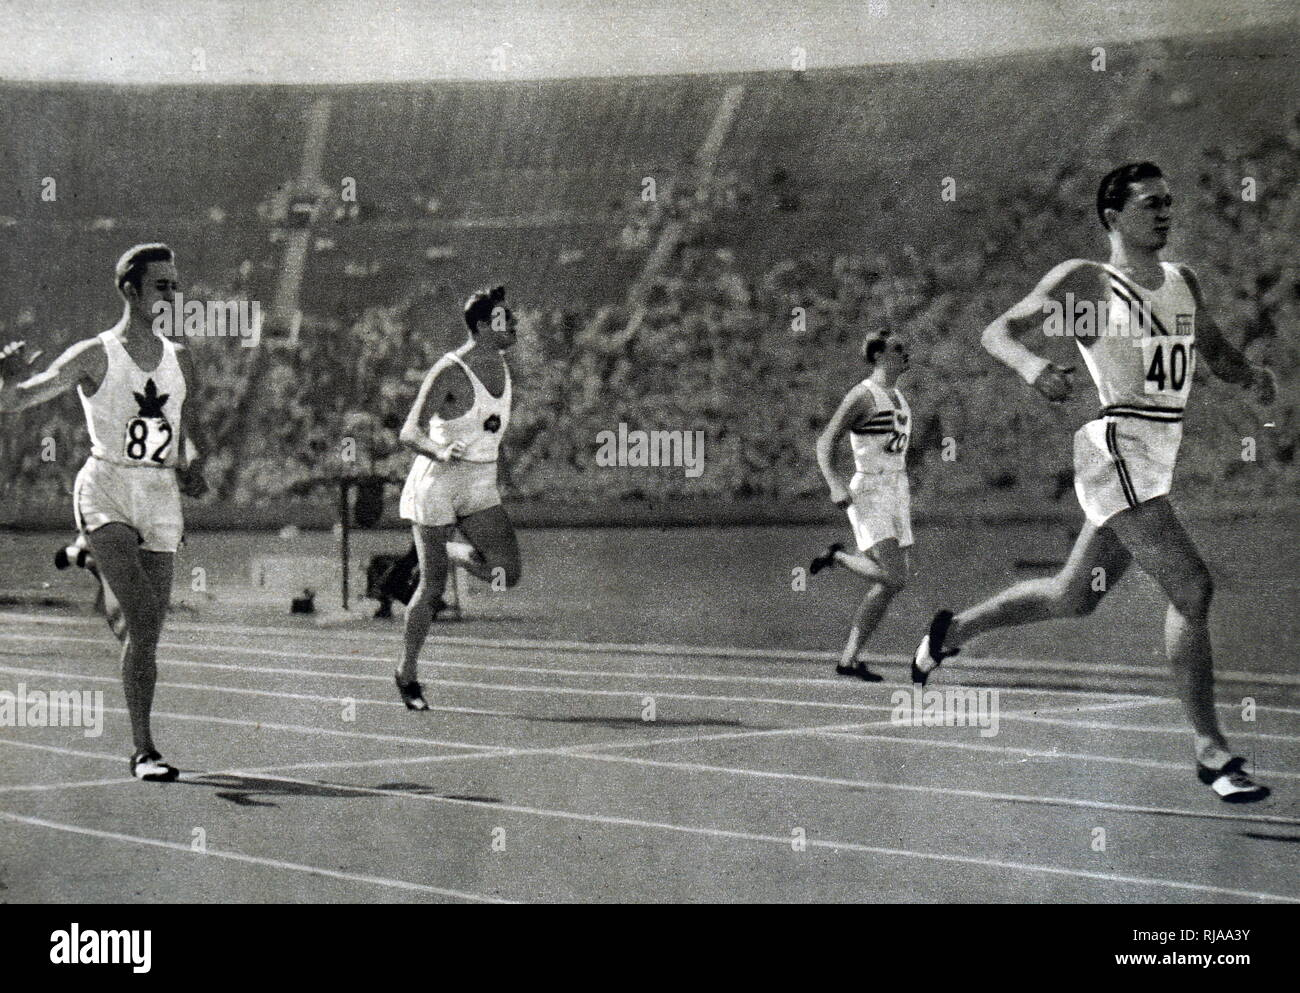 Photograph of Bill Carr (1906-1966) was a favourite for the 400 m gold at the 1932 Summer Olympics. Carr took the victory in 46.2 seconds talking gold and setting a new world record. Dated 20th Century - Stock Image